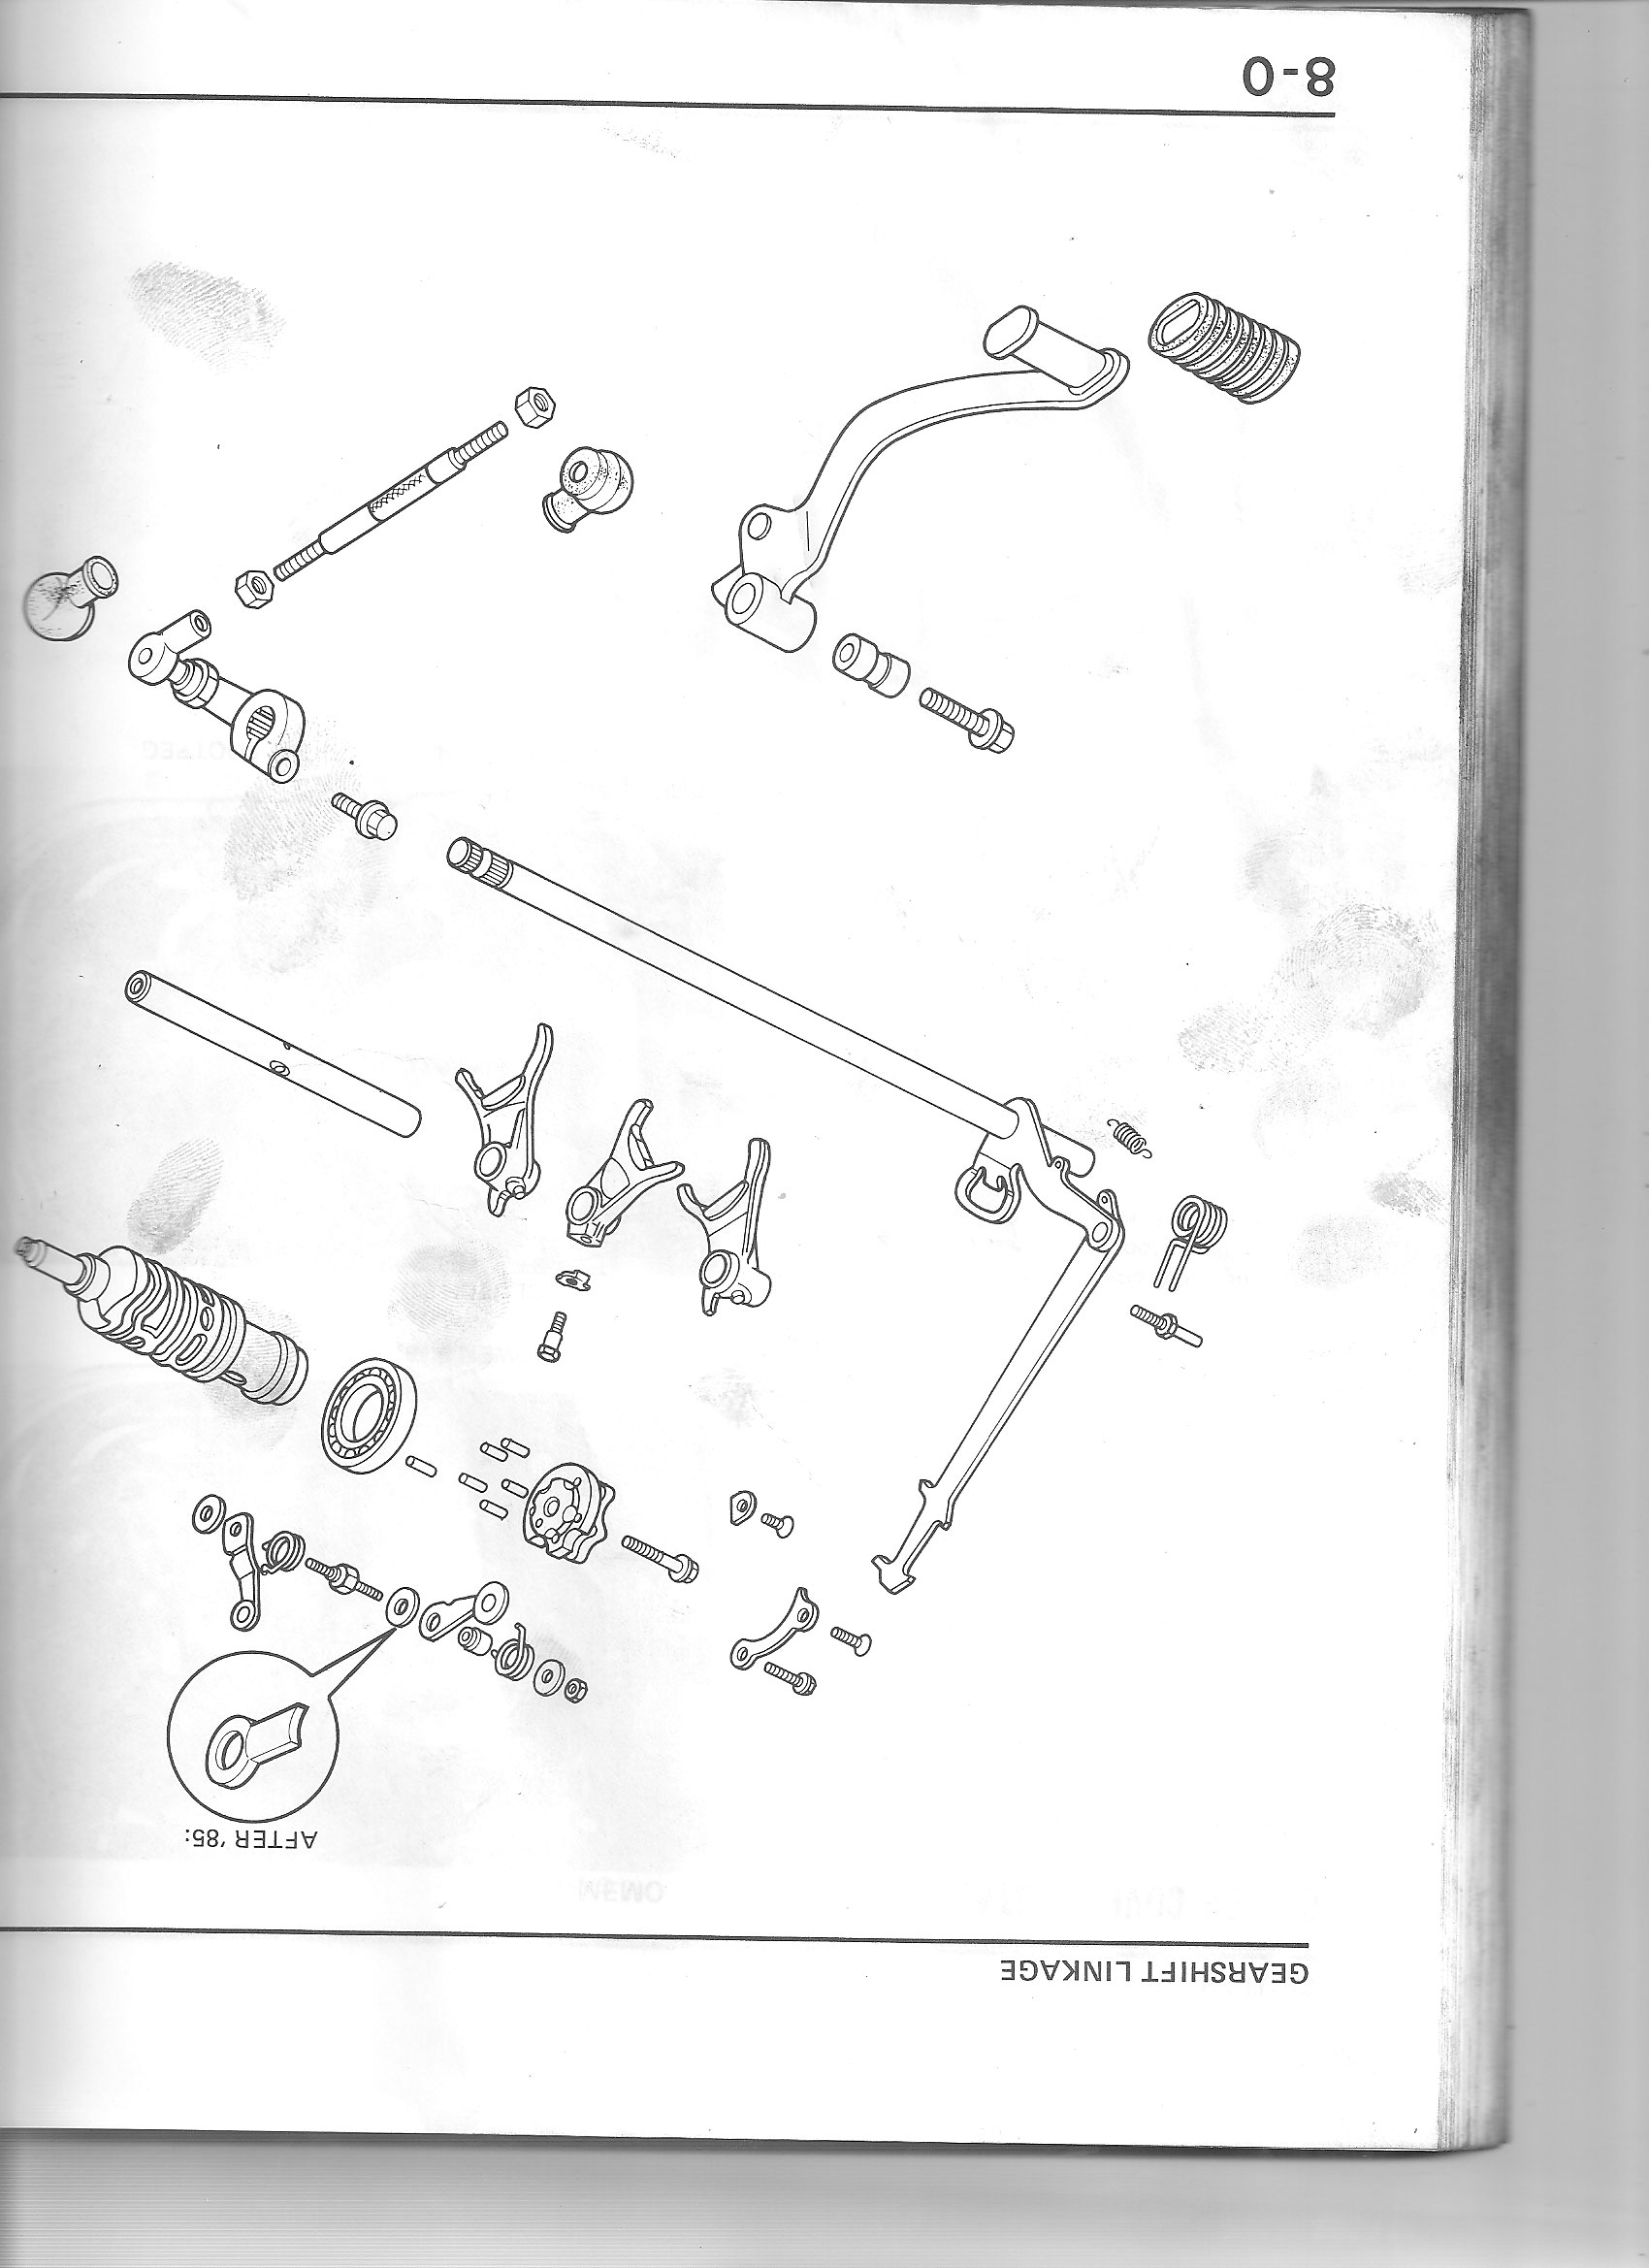 Fuel Tank Schematic Honda Vf750s V45 Sabre 1983 Usa Pictures To Pin On